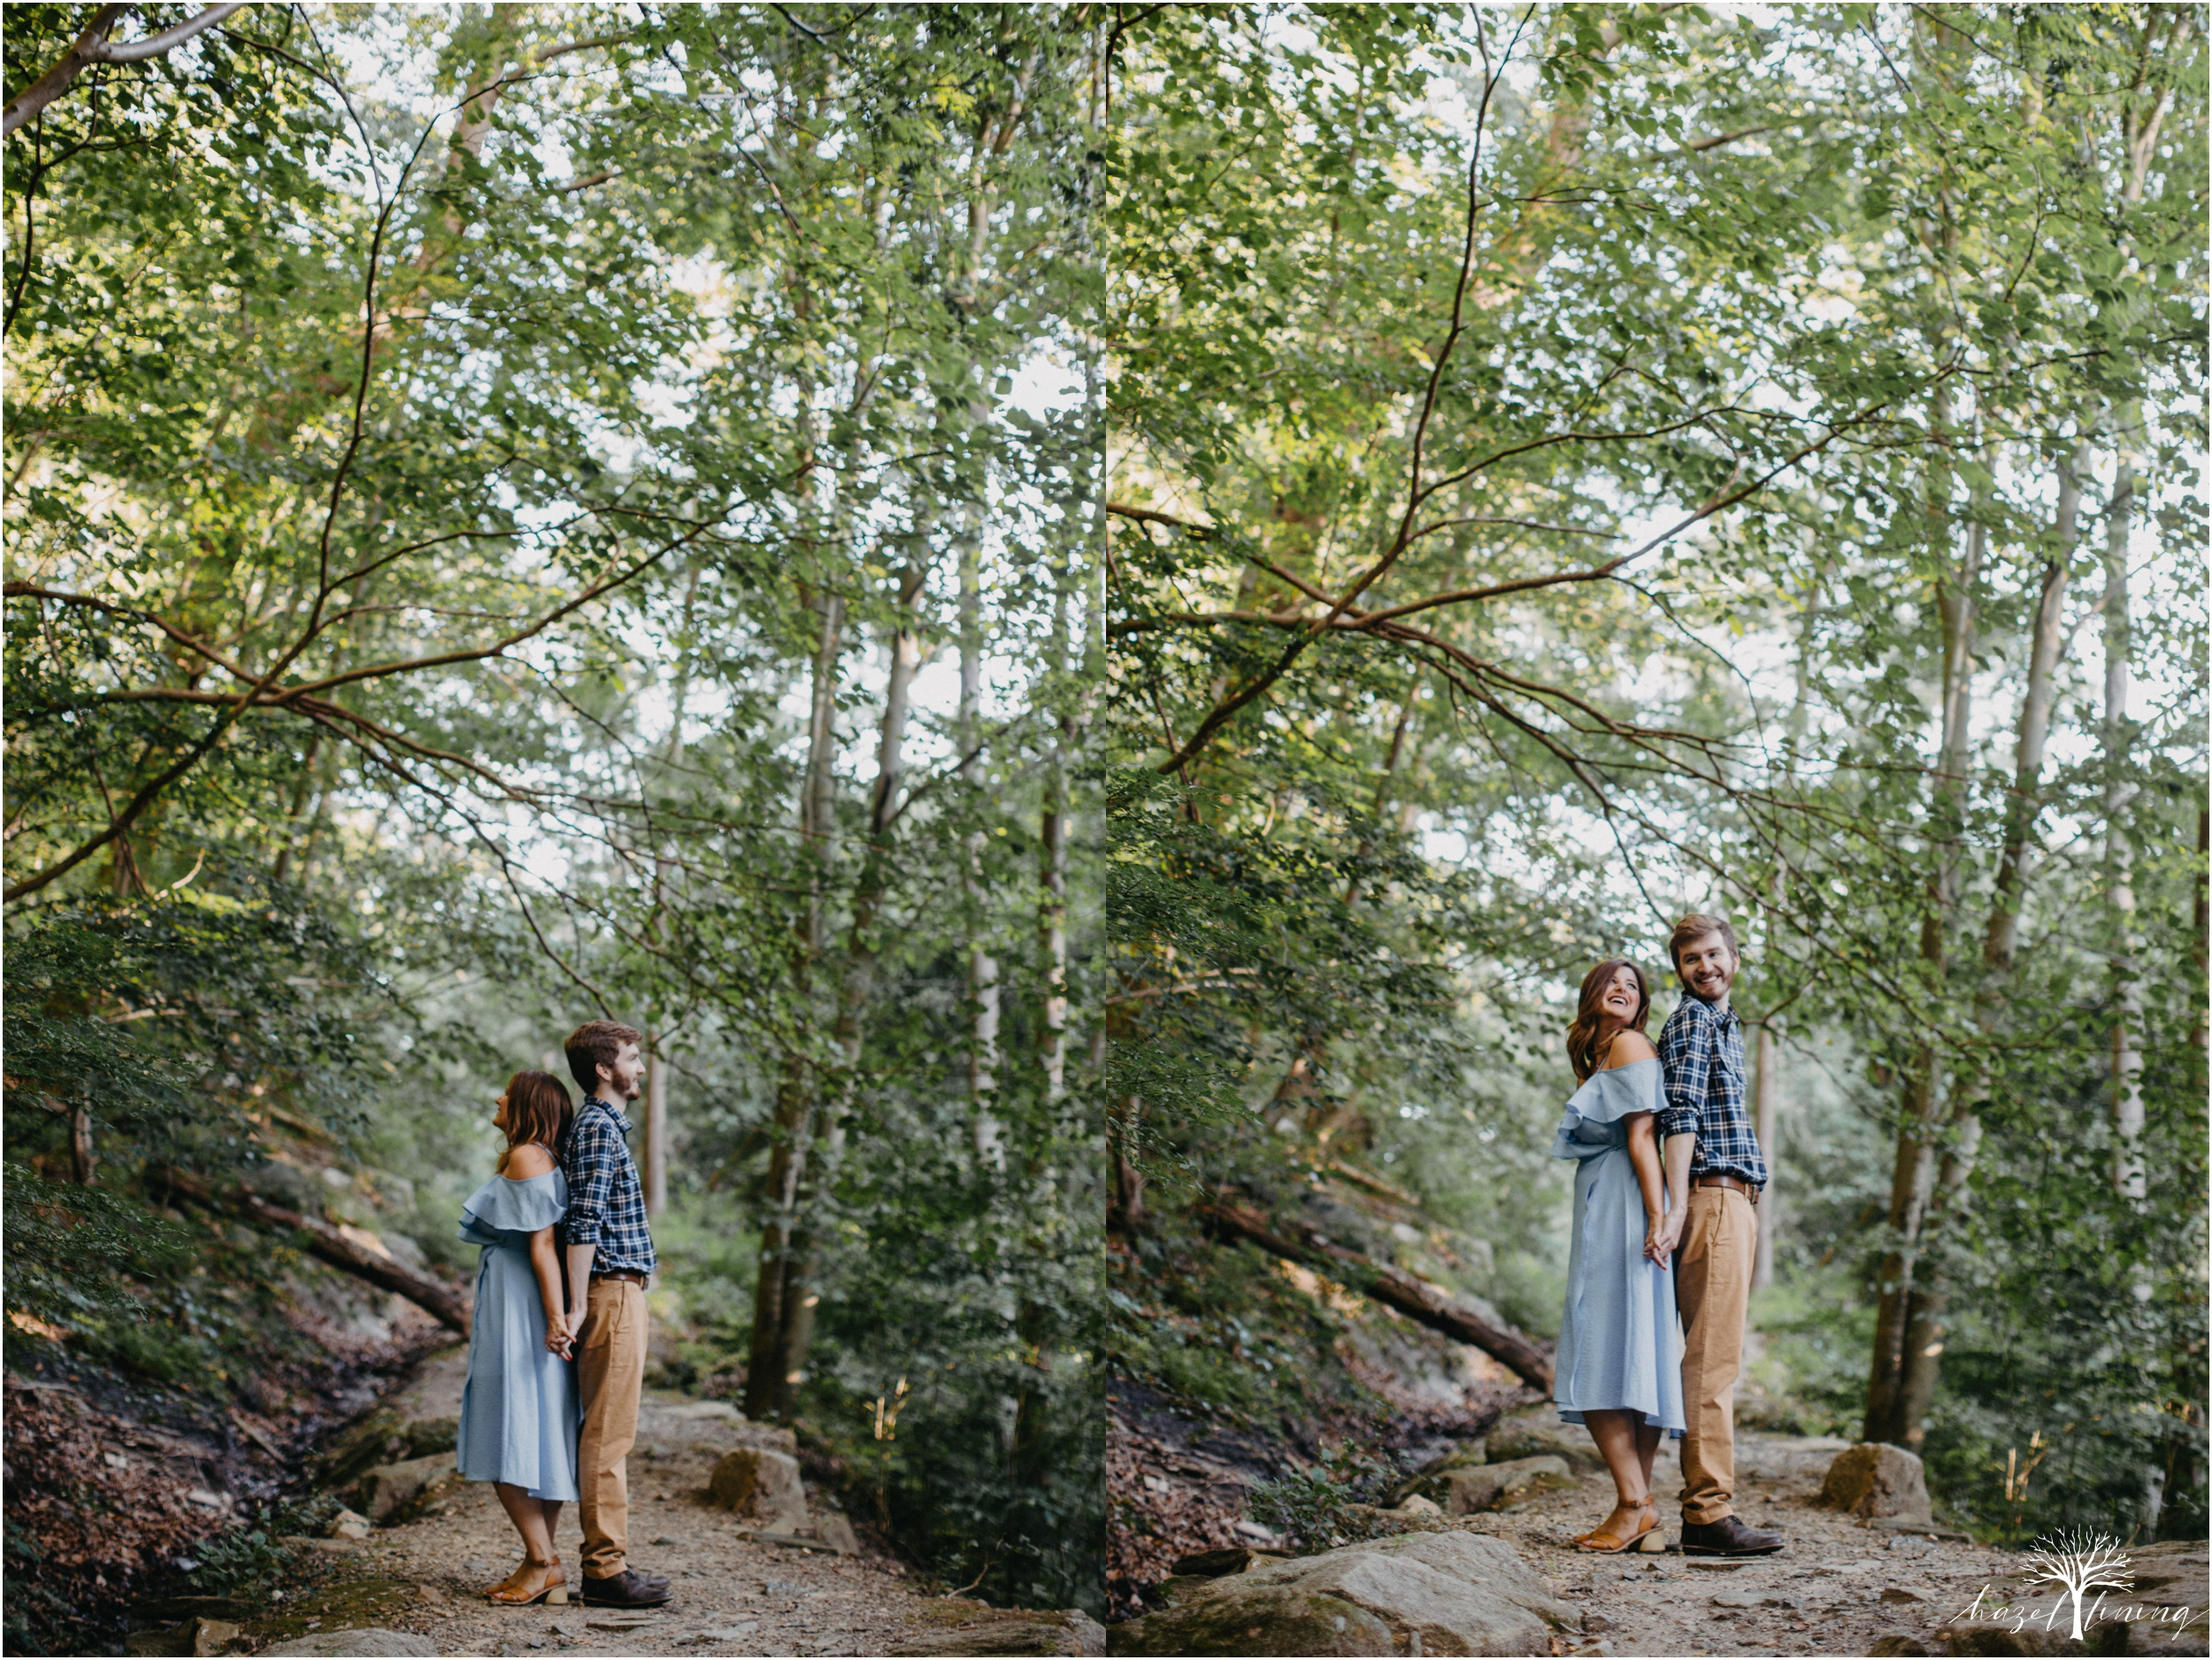 paige-kochey-chris-graham-valley-green-wissahickon-park-philadelphia-summer-engagement-session-hazel-lining-photography-destination-elopement-wedding-engagement-photography_0032.jpg